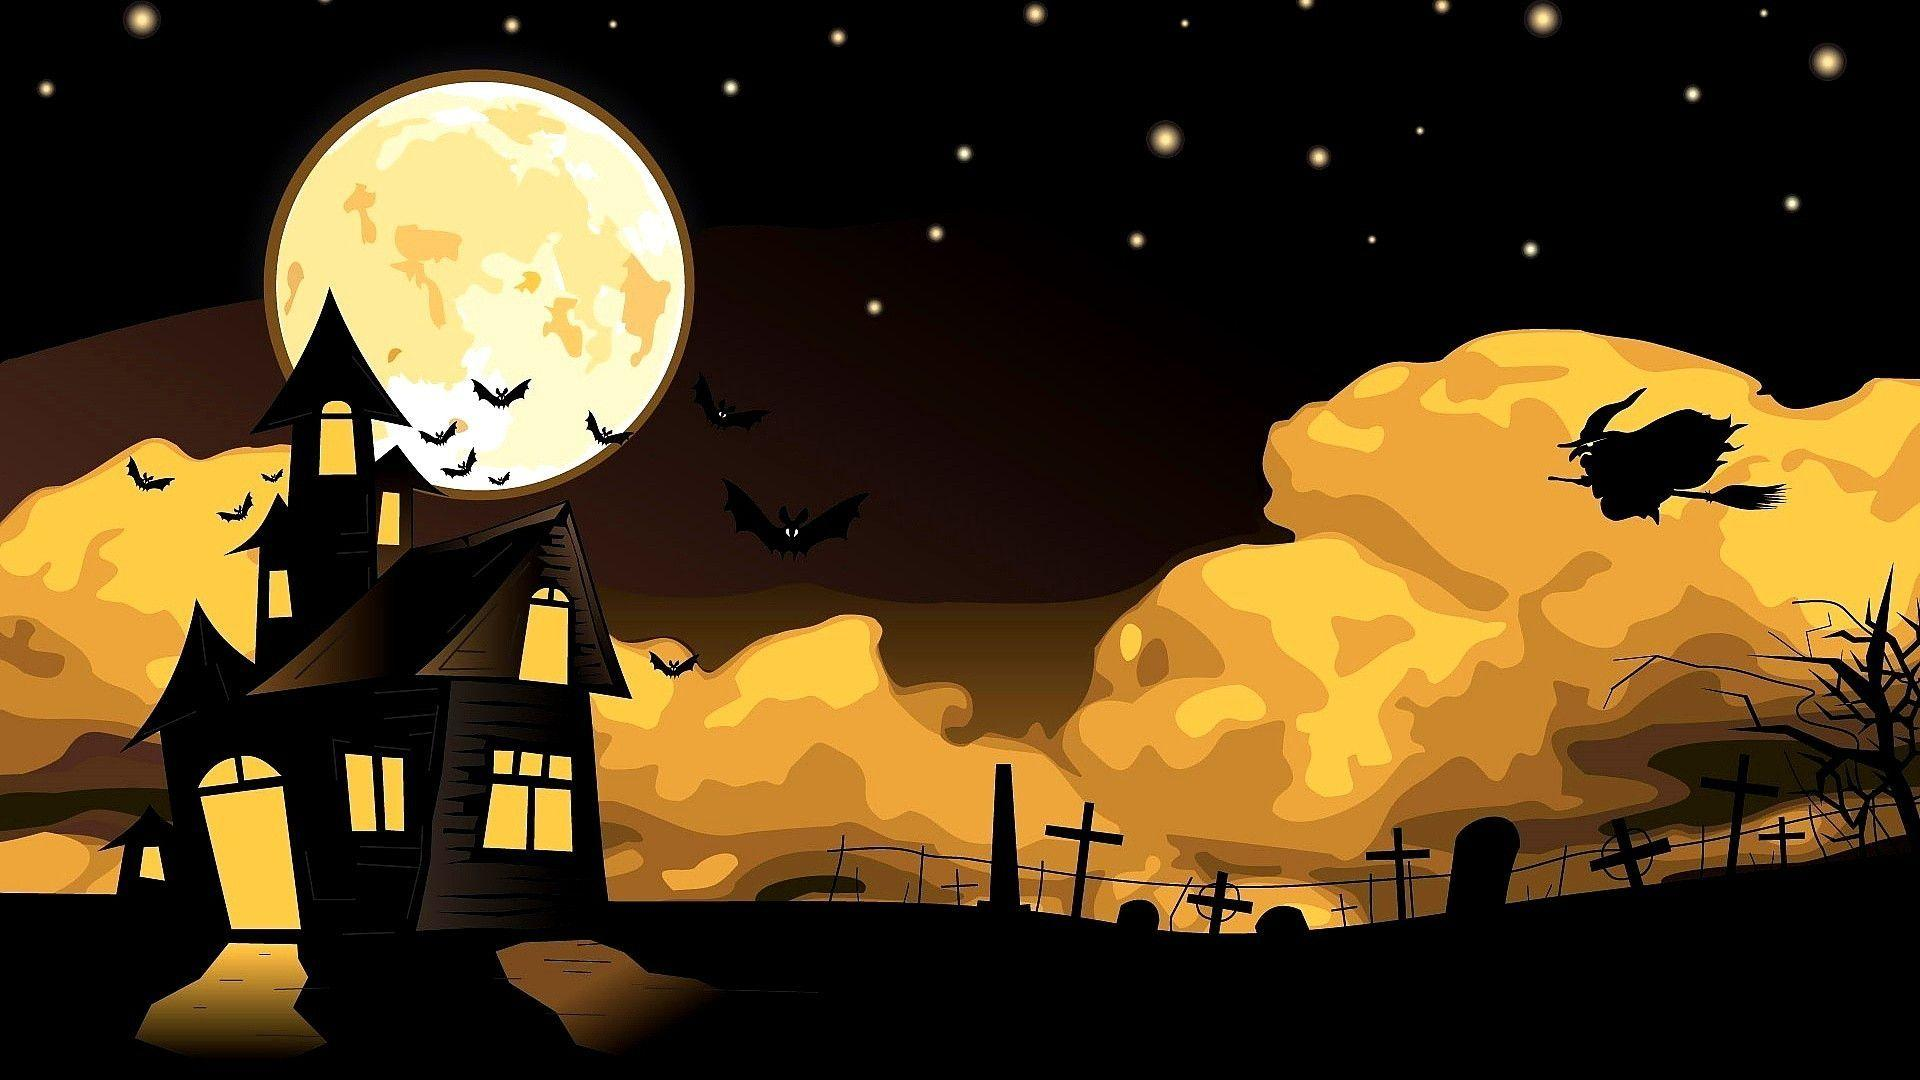 1920x1080 Hd Wallpapers For Your Desktop: 1920x1080 Halloween Wallpapers